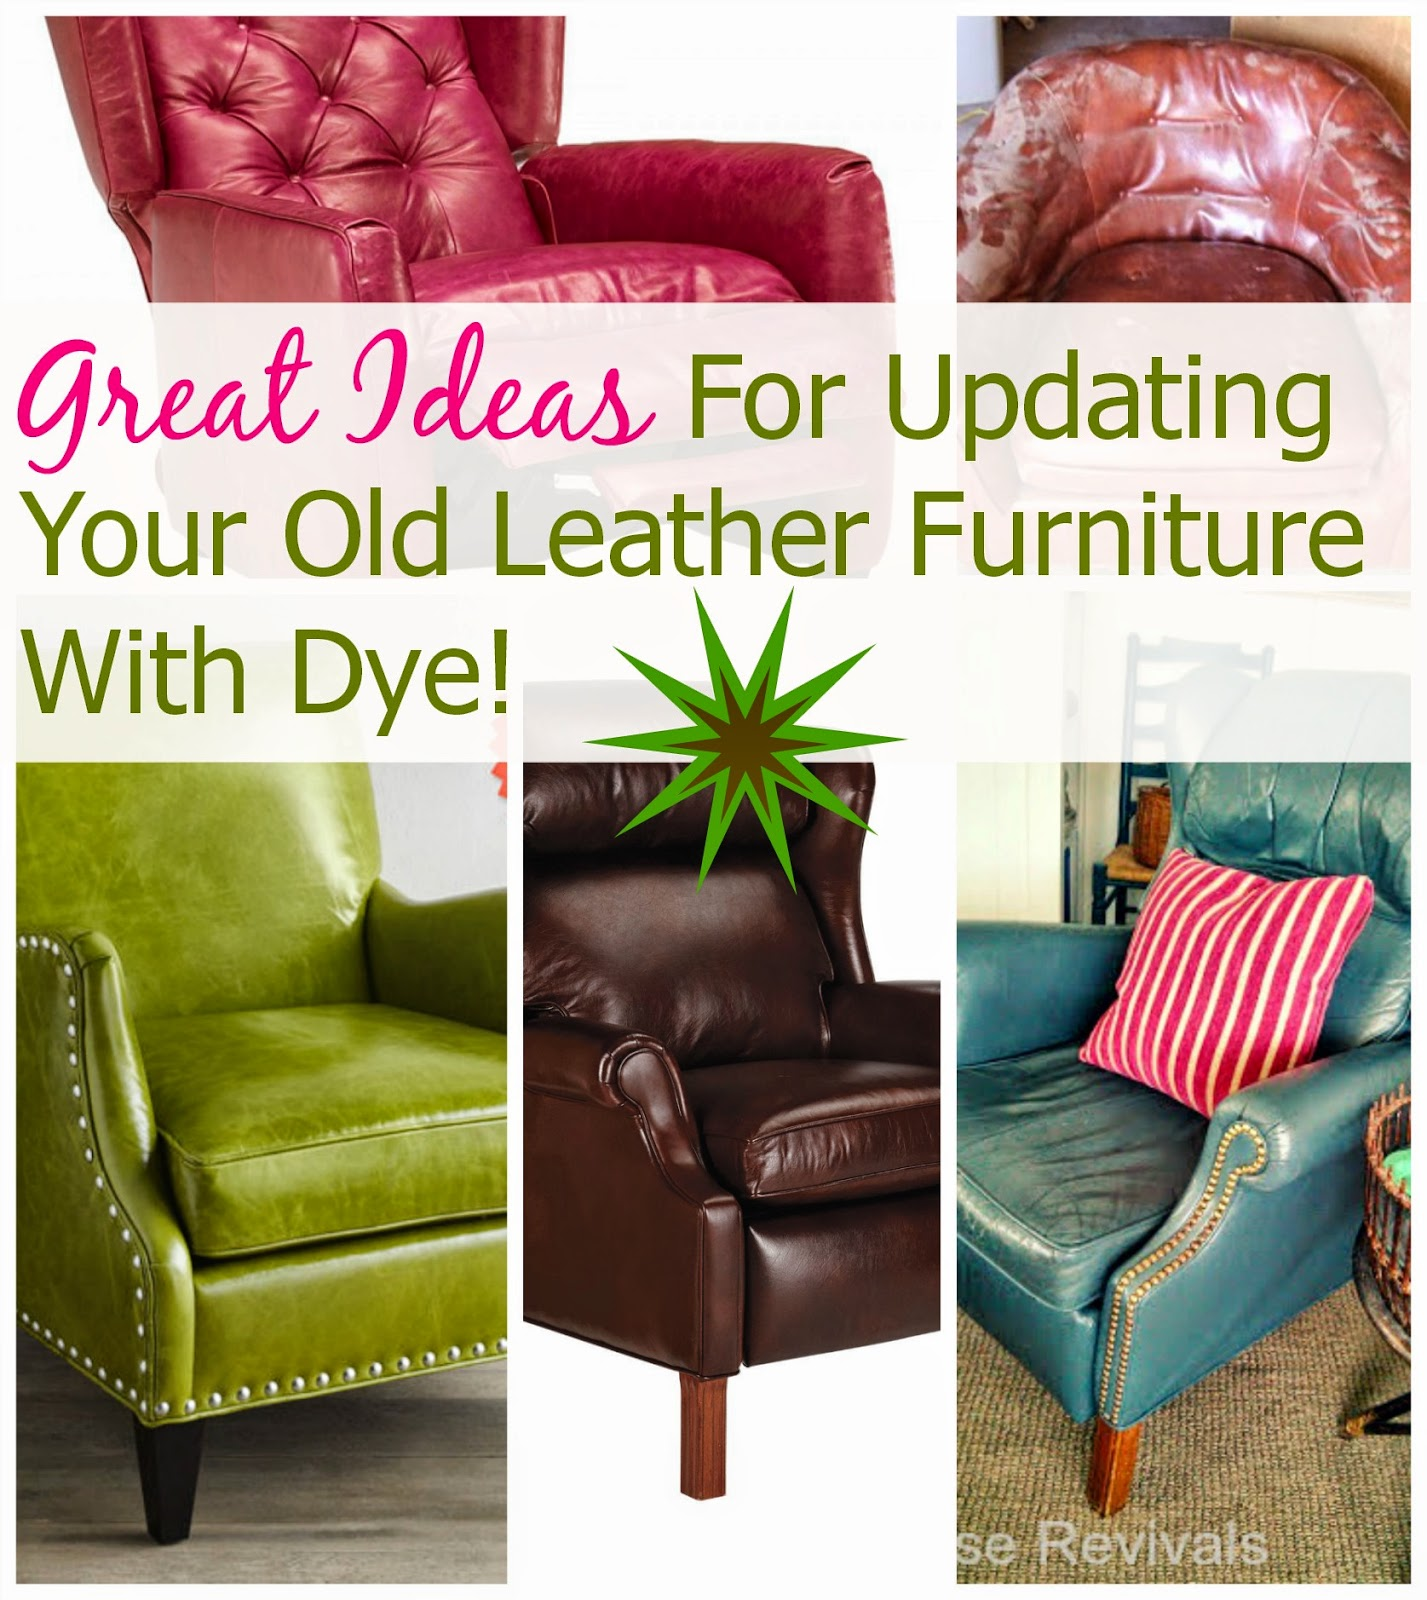 Leather Sofa Paint Repair: Here's Wishing You All A Safe And Happy New Year, And A